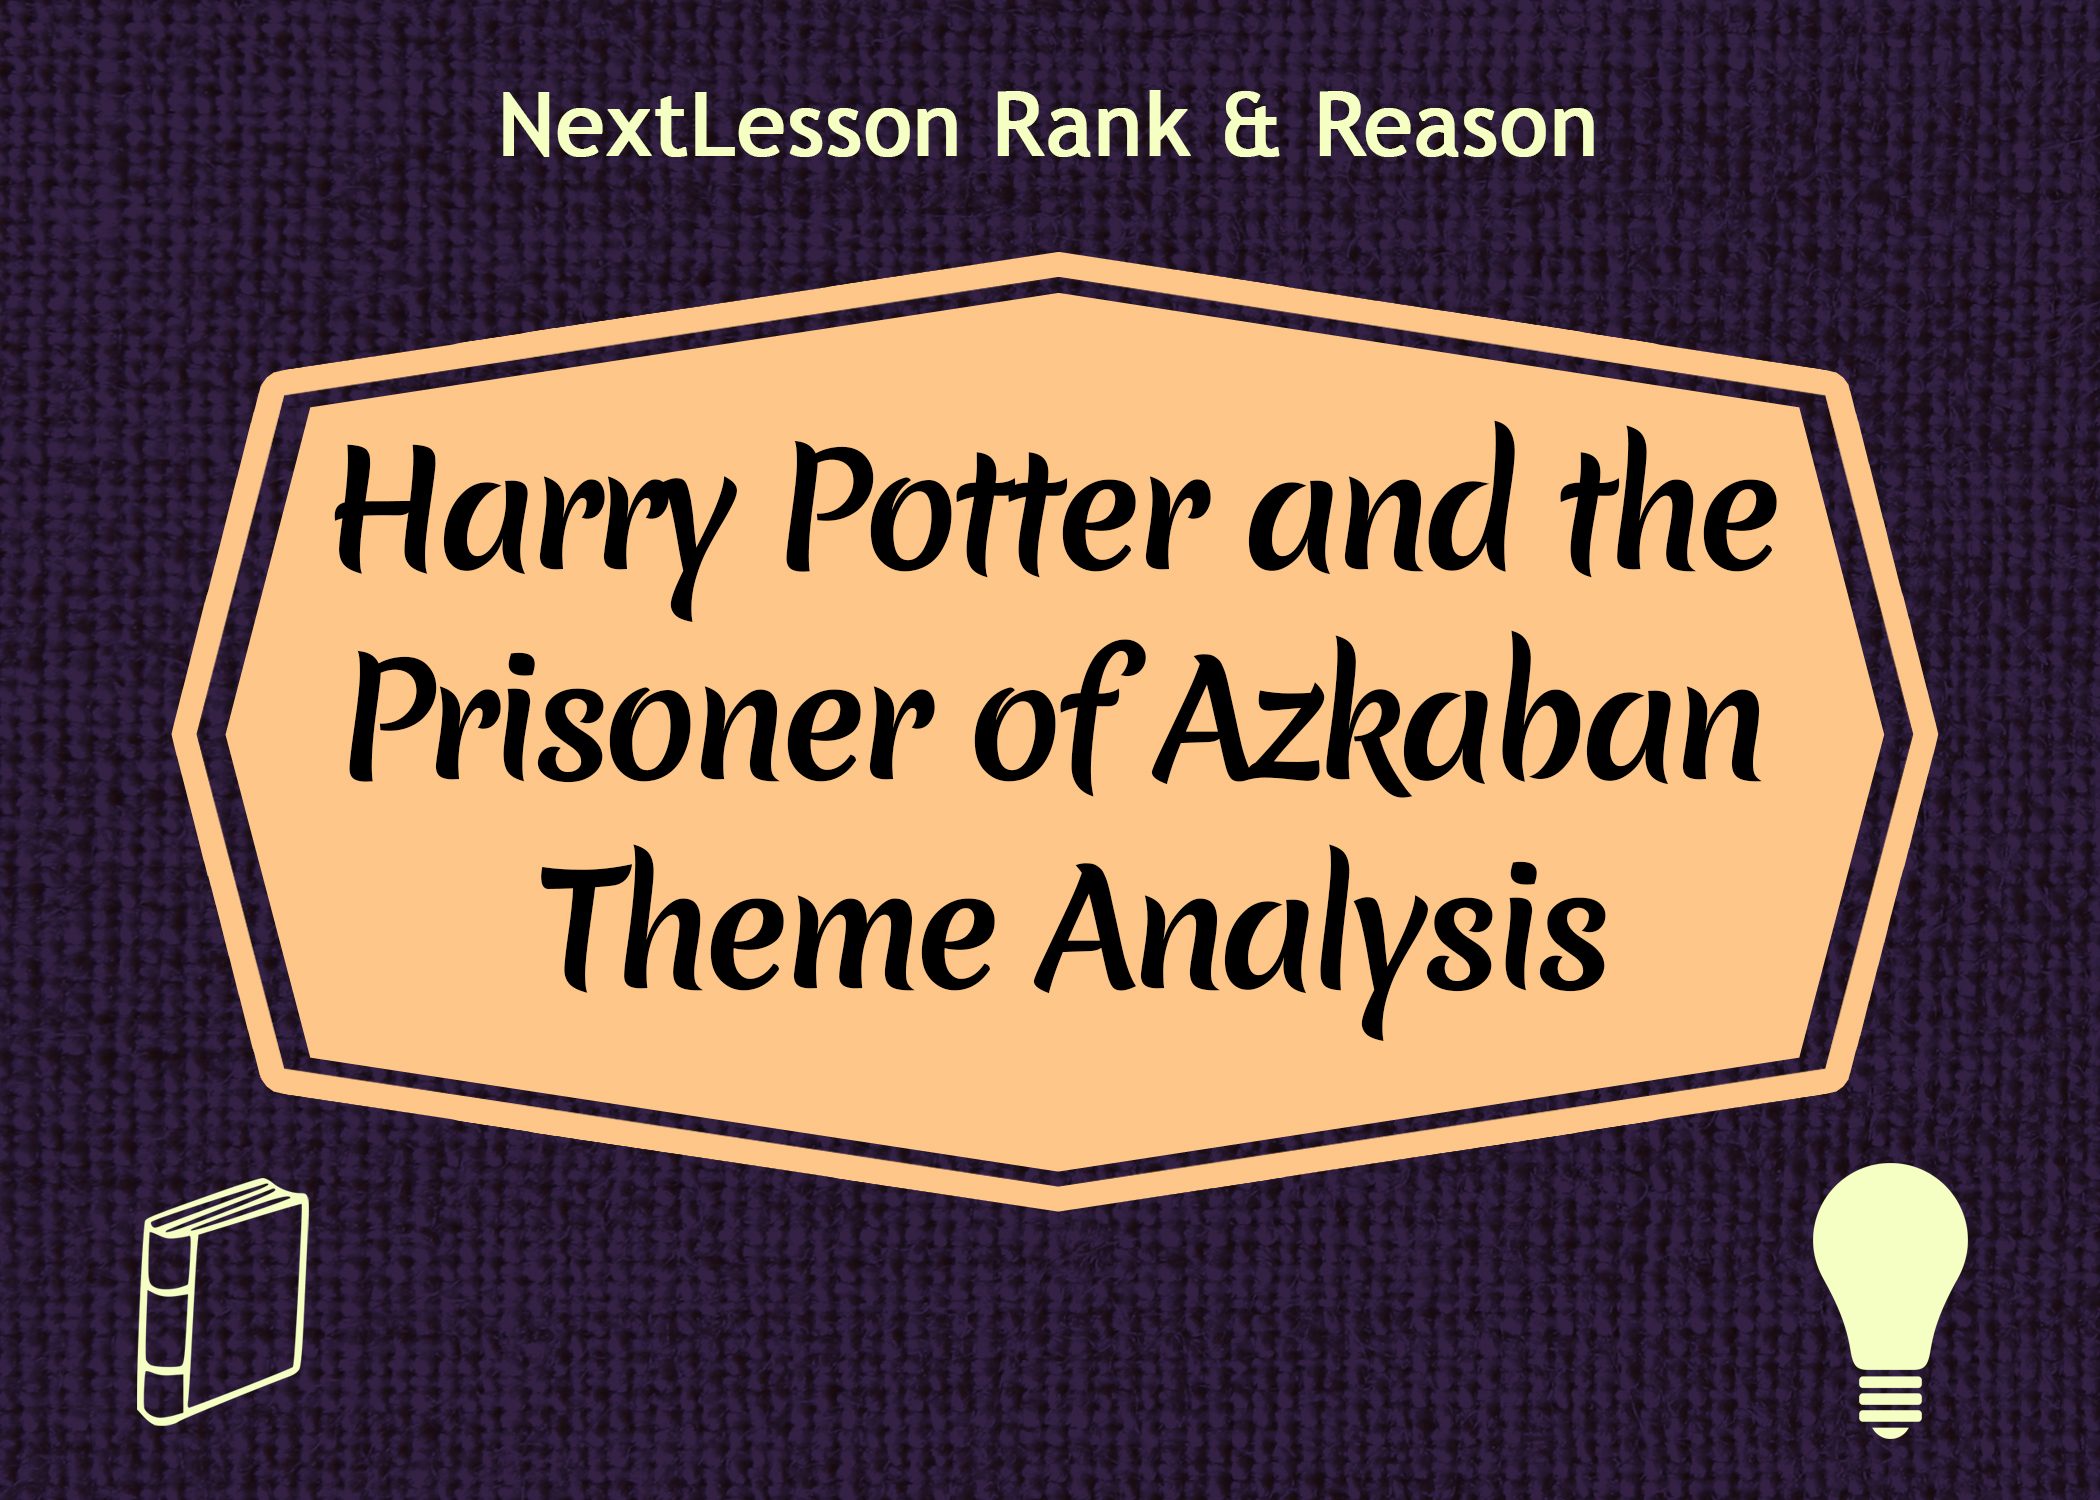 an analysis of the prisoners